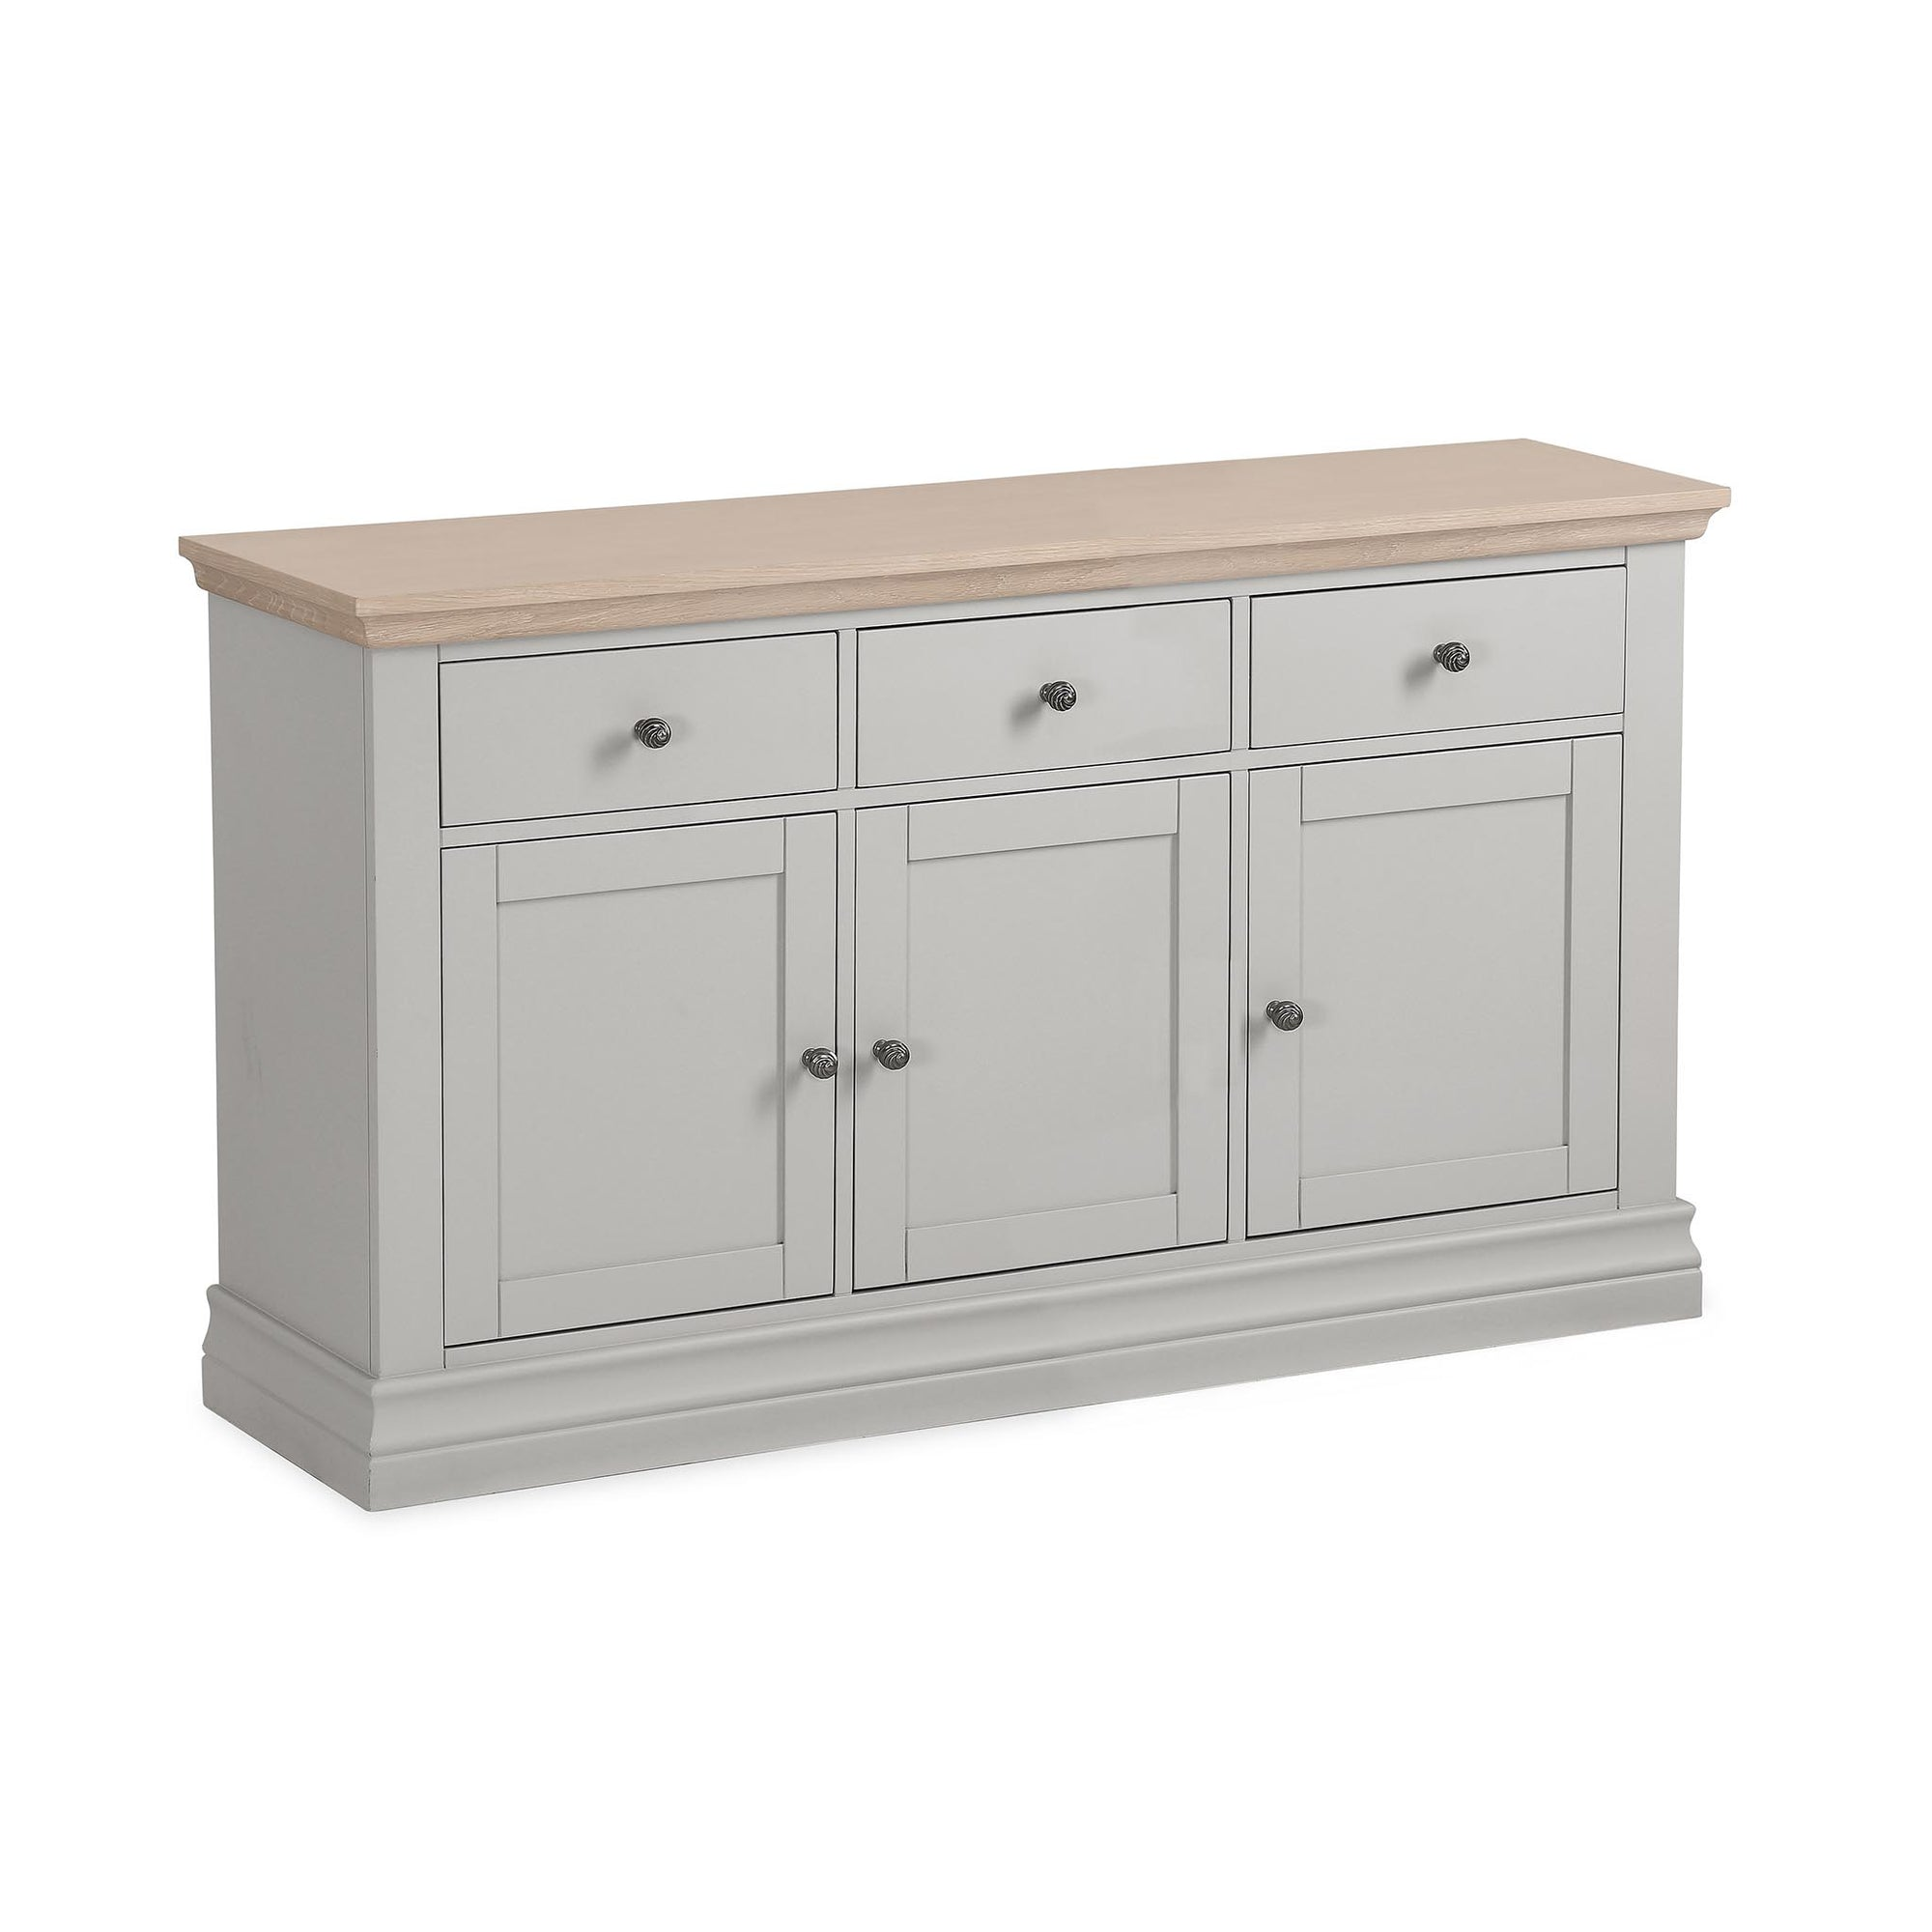 Melrose Grey Large Sideboard from Roseland Furniture